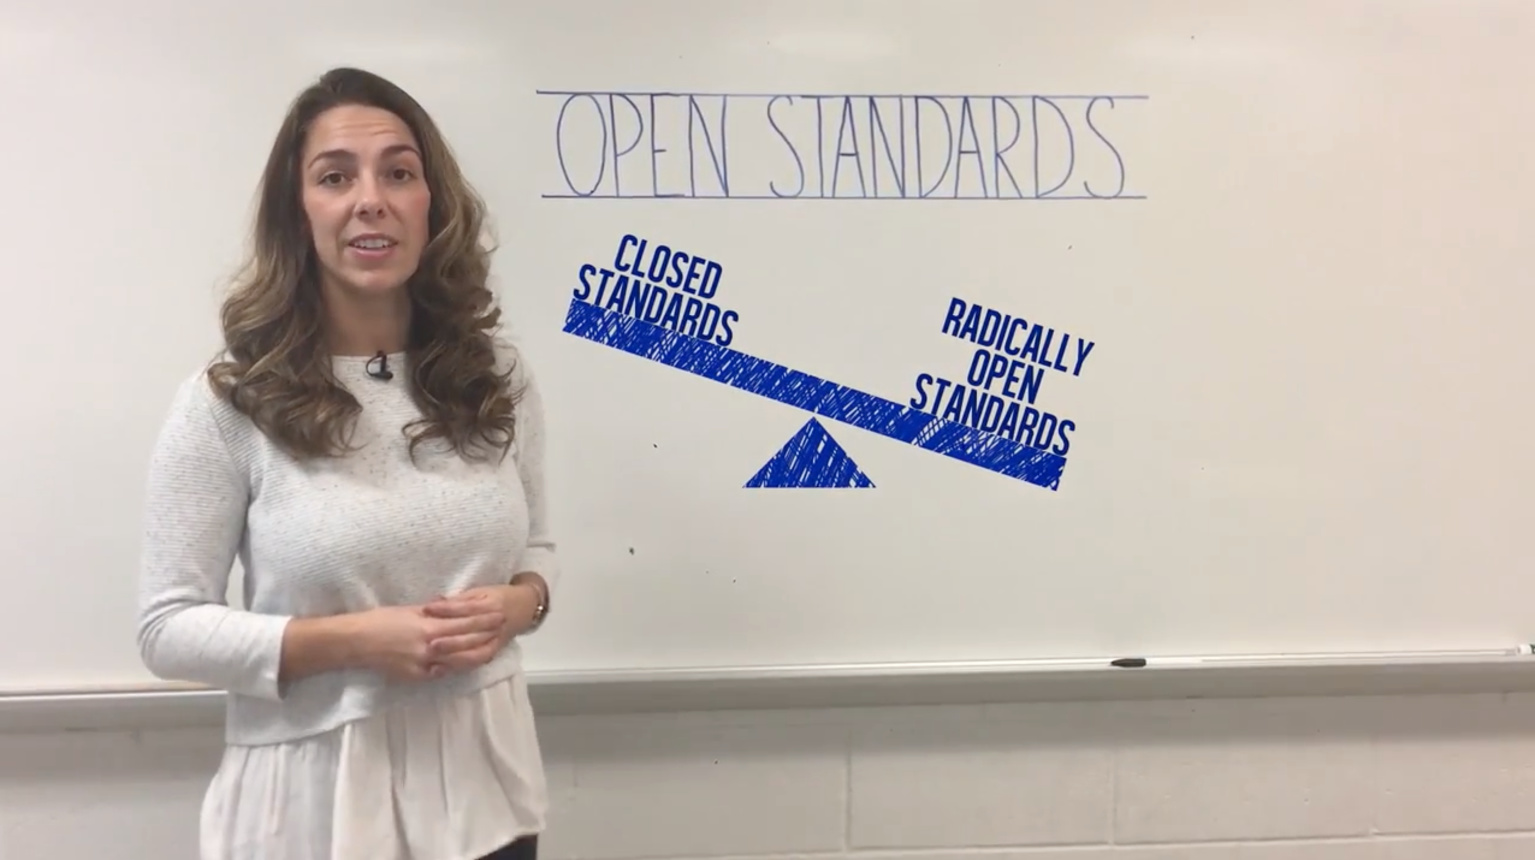 Standards Ideology: Exploring Open Standards, Part 3